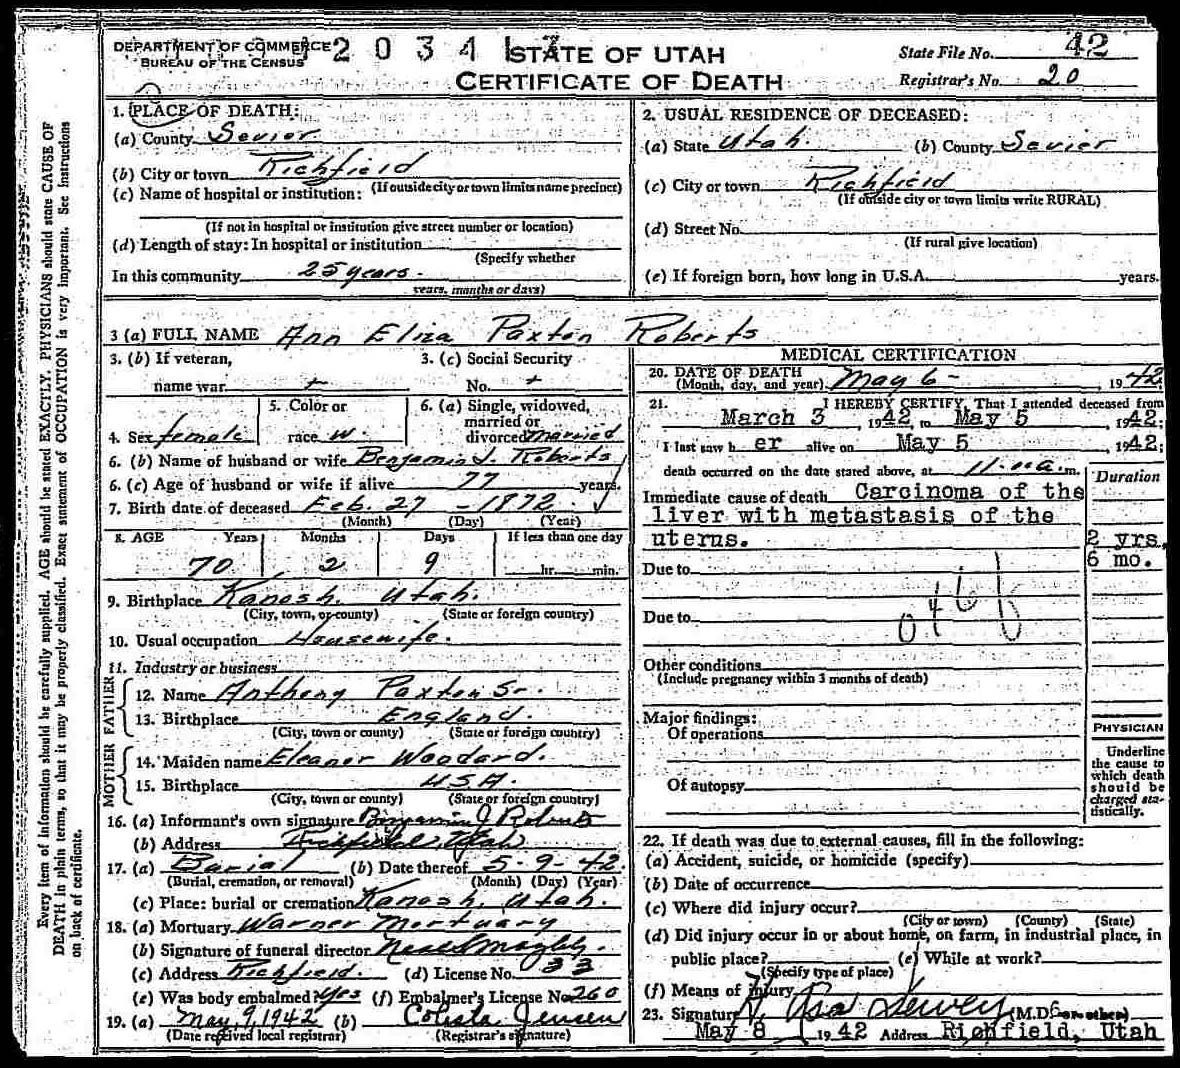 Documents ann eliza paxton 1972 1942 death certificate the documents ann eliza paxton 1972 1942 death certificate the watson clan genealogy 1betcityfo Choice Image